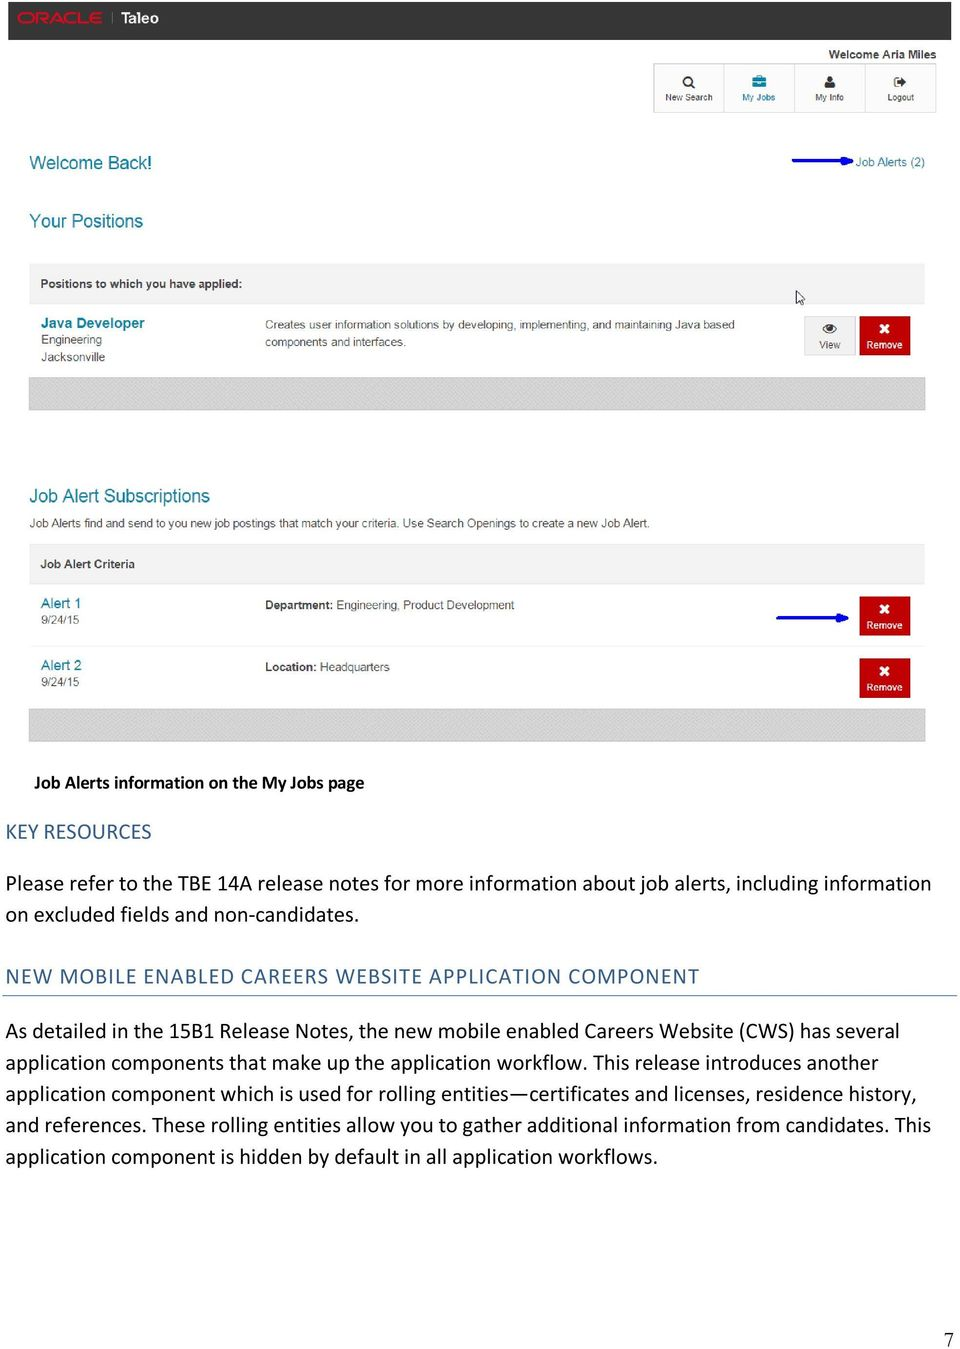 NEW MOBILE ENABLED CAREERS WEBSITE APPLICATION COMPONENT As detailed in the 15B1 Release Notes, the new mobile enabled Careers Website (CWS) has several application components that